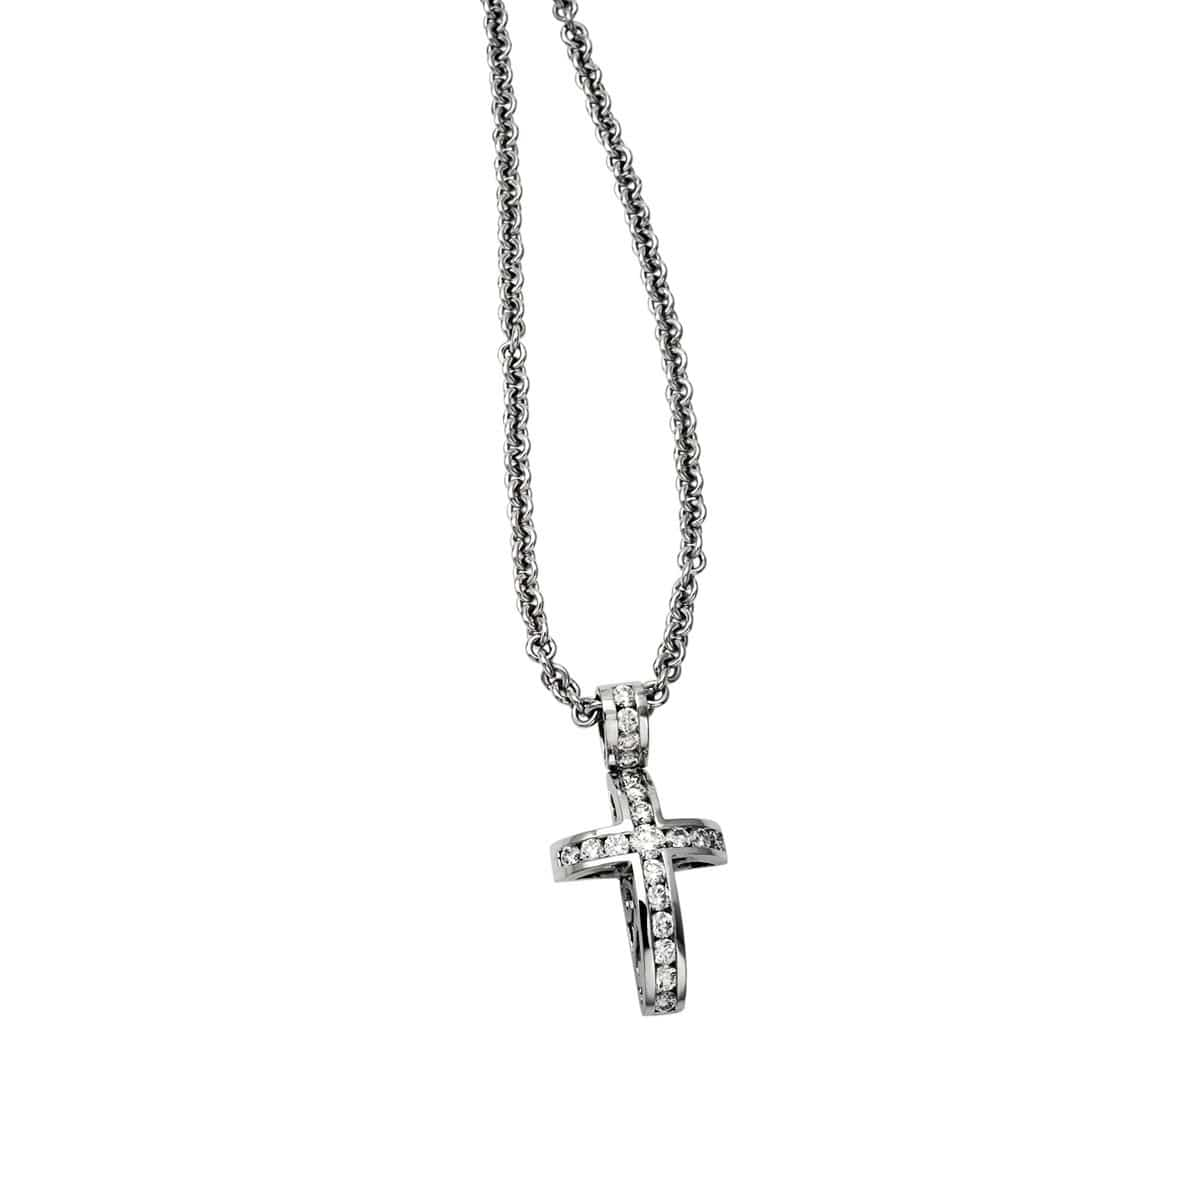 WHITE GOLD DIAMOND CROSS - Chris Aire Fine Jewelry & Timepieces